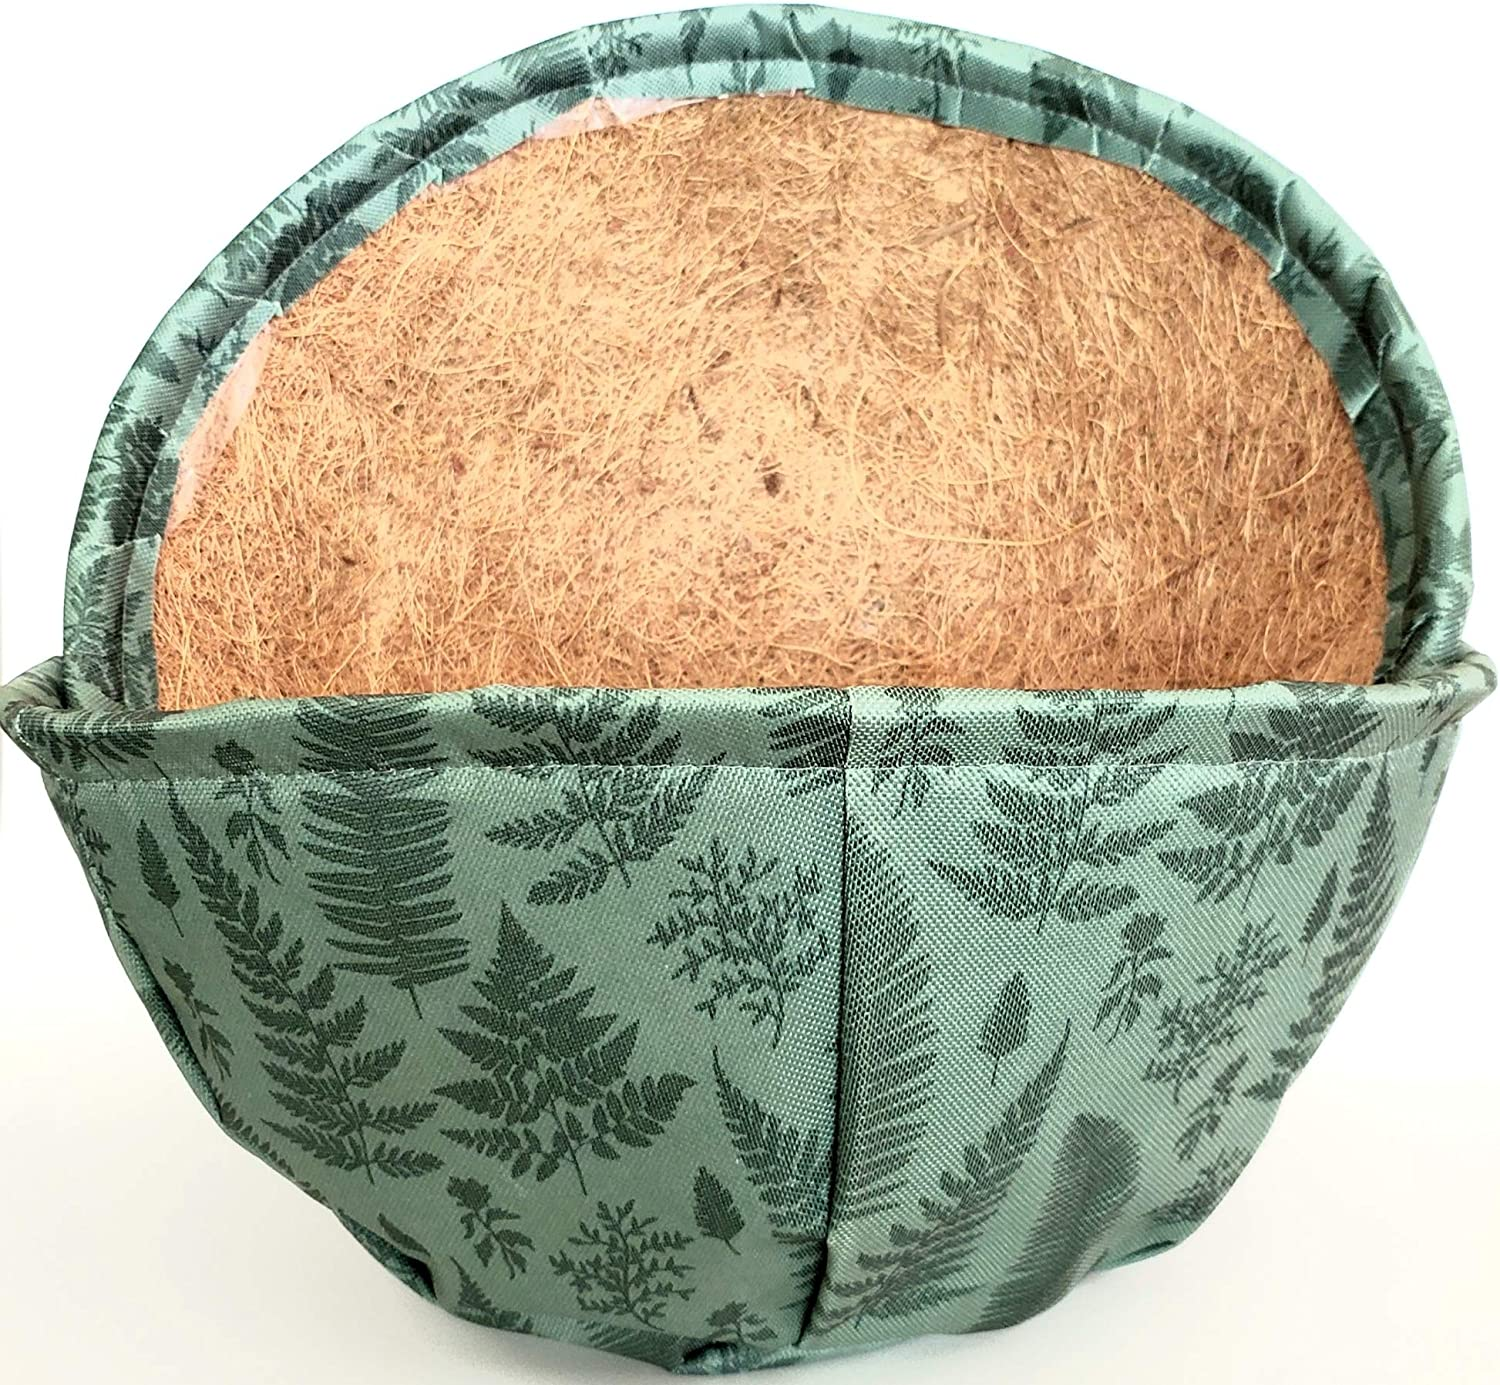 Fabric Covered Coconut Liner 14 Inch 2 Pack